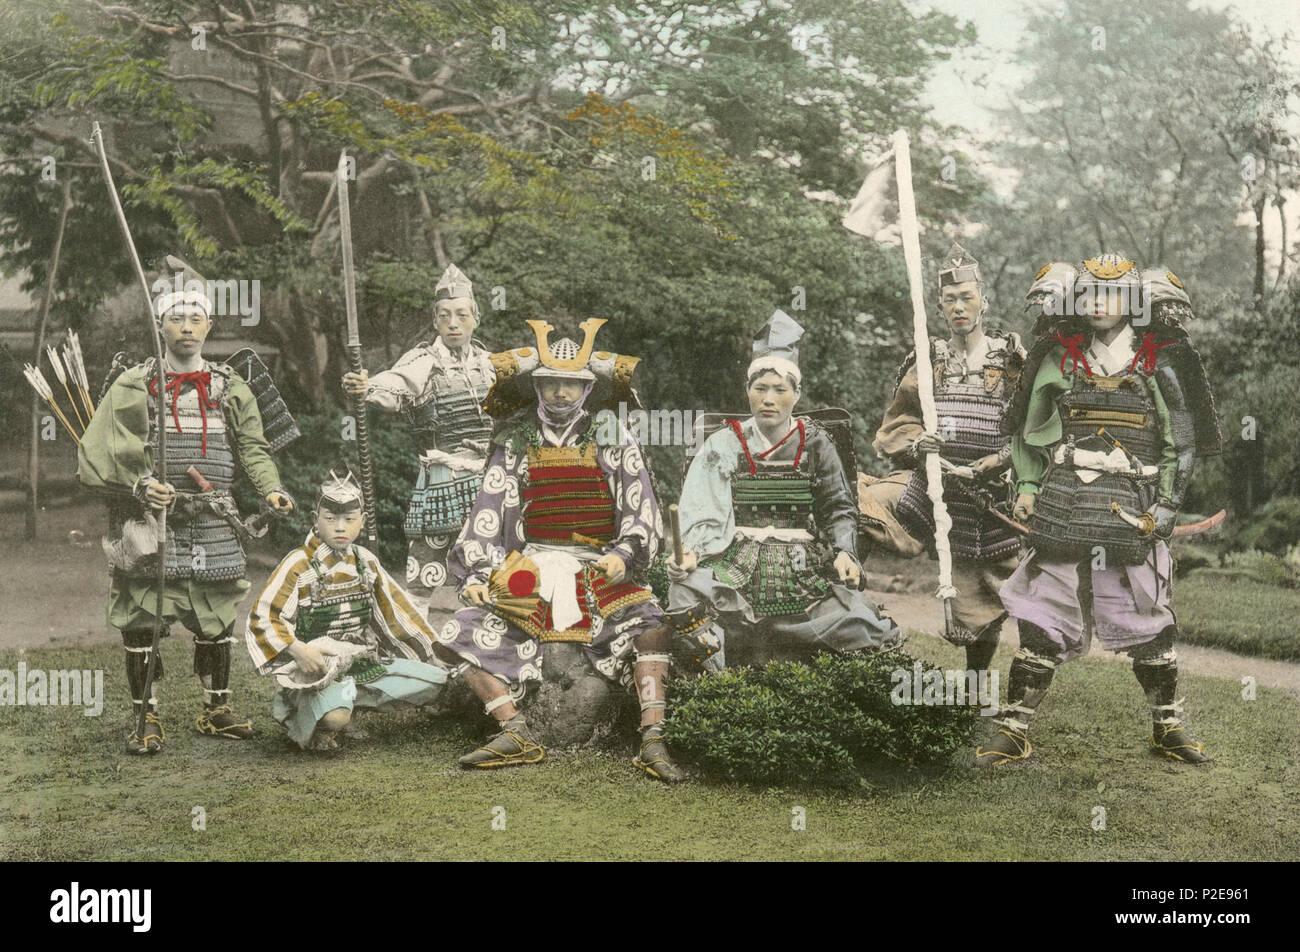 Armour and Weapons of ancient warriors, Japan - Stock Image